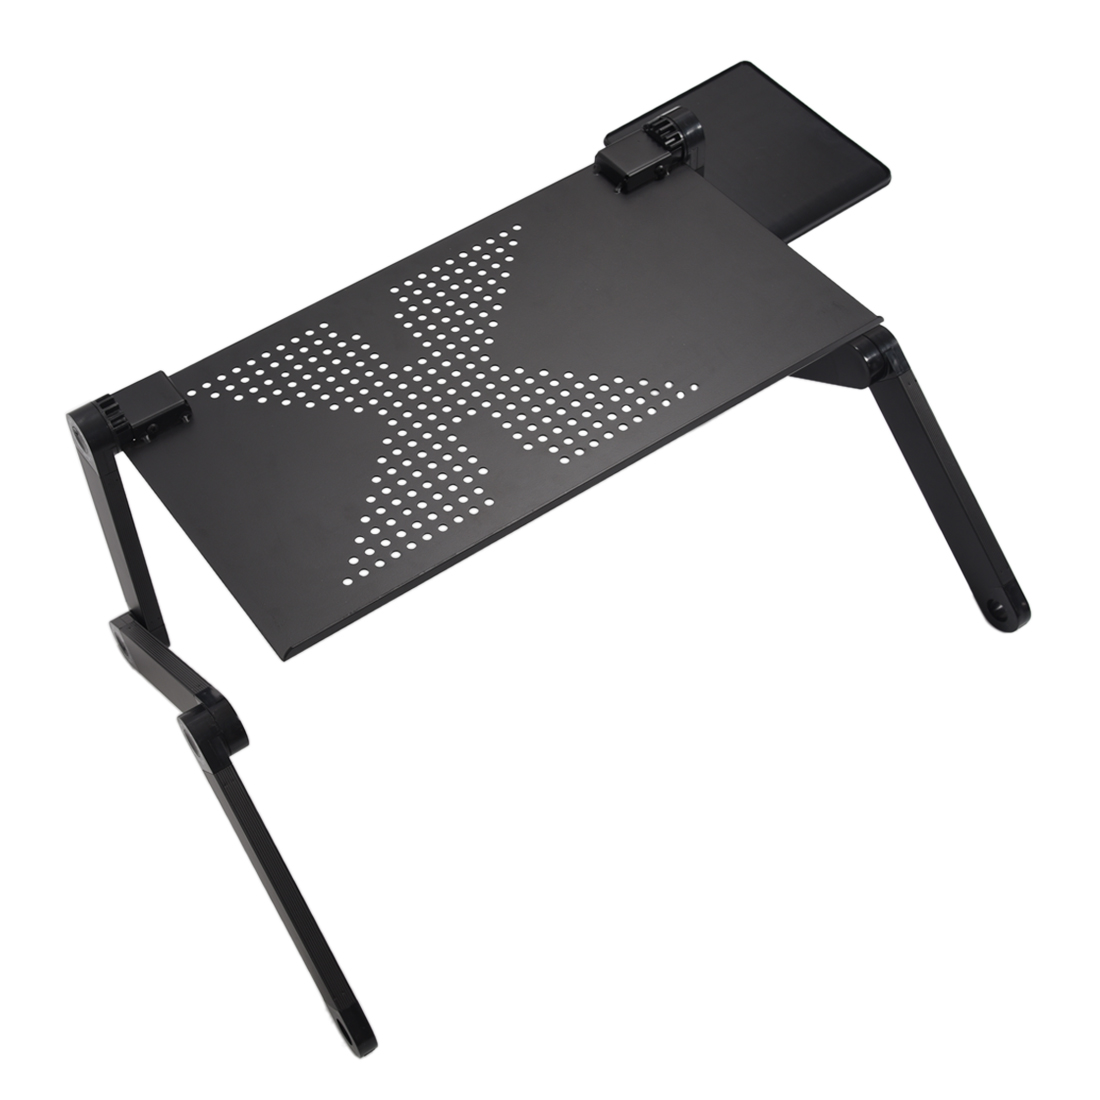 Foldable computer desk Portable laptop stand bed Adjustable Laptop Desk Computer Table Stand Tray For Sofa Bed Black title=